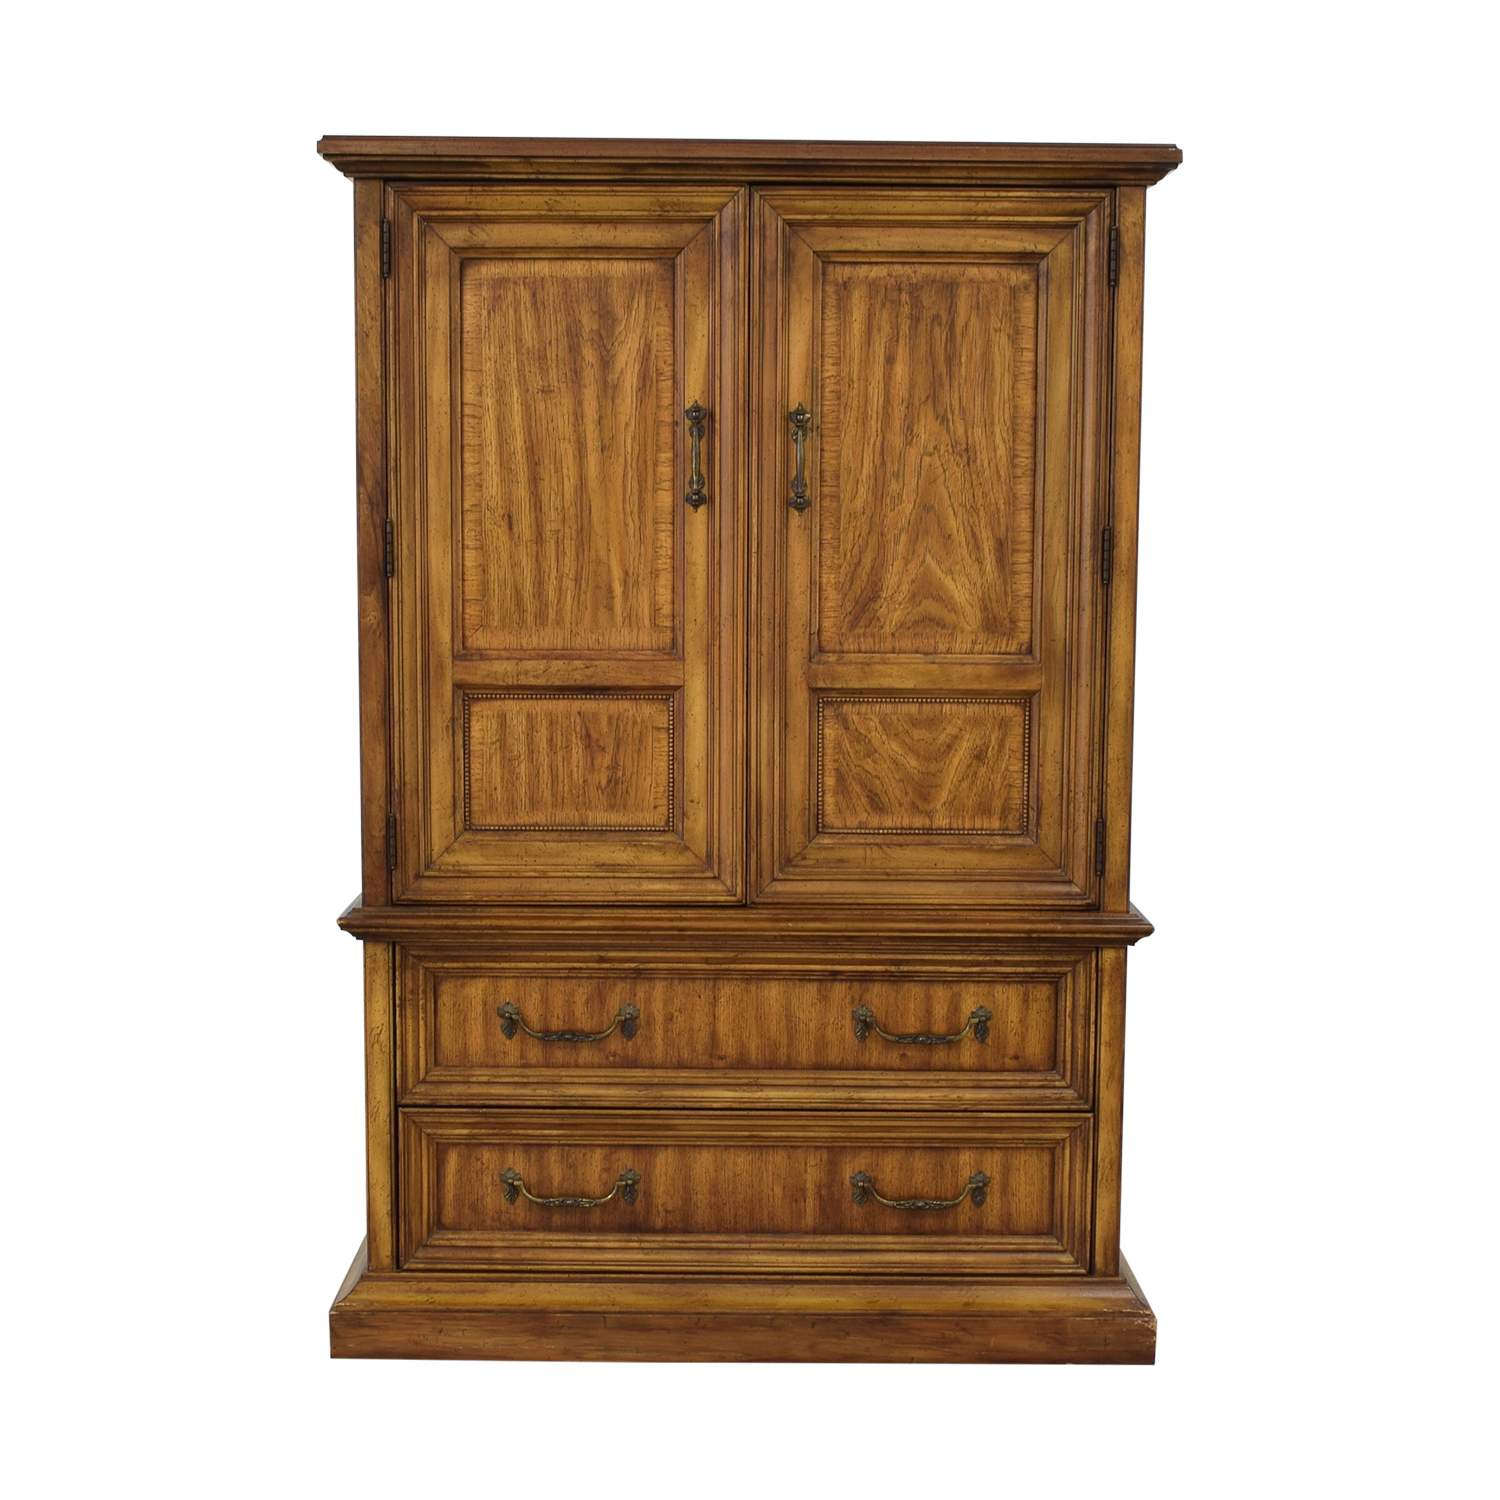 Stanley Furniture Stanley Furniture Armoire Storage